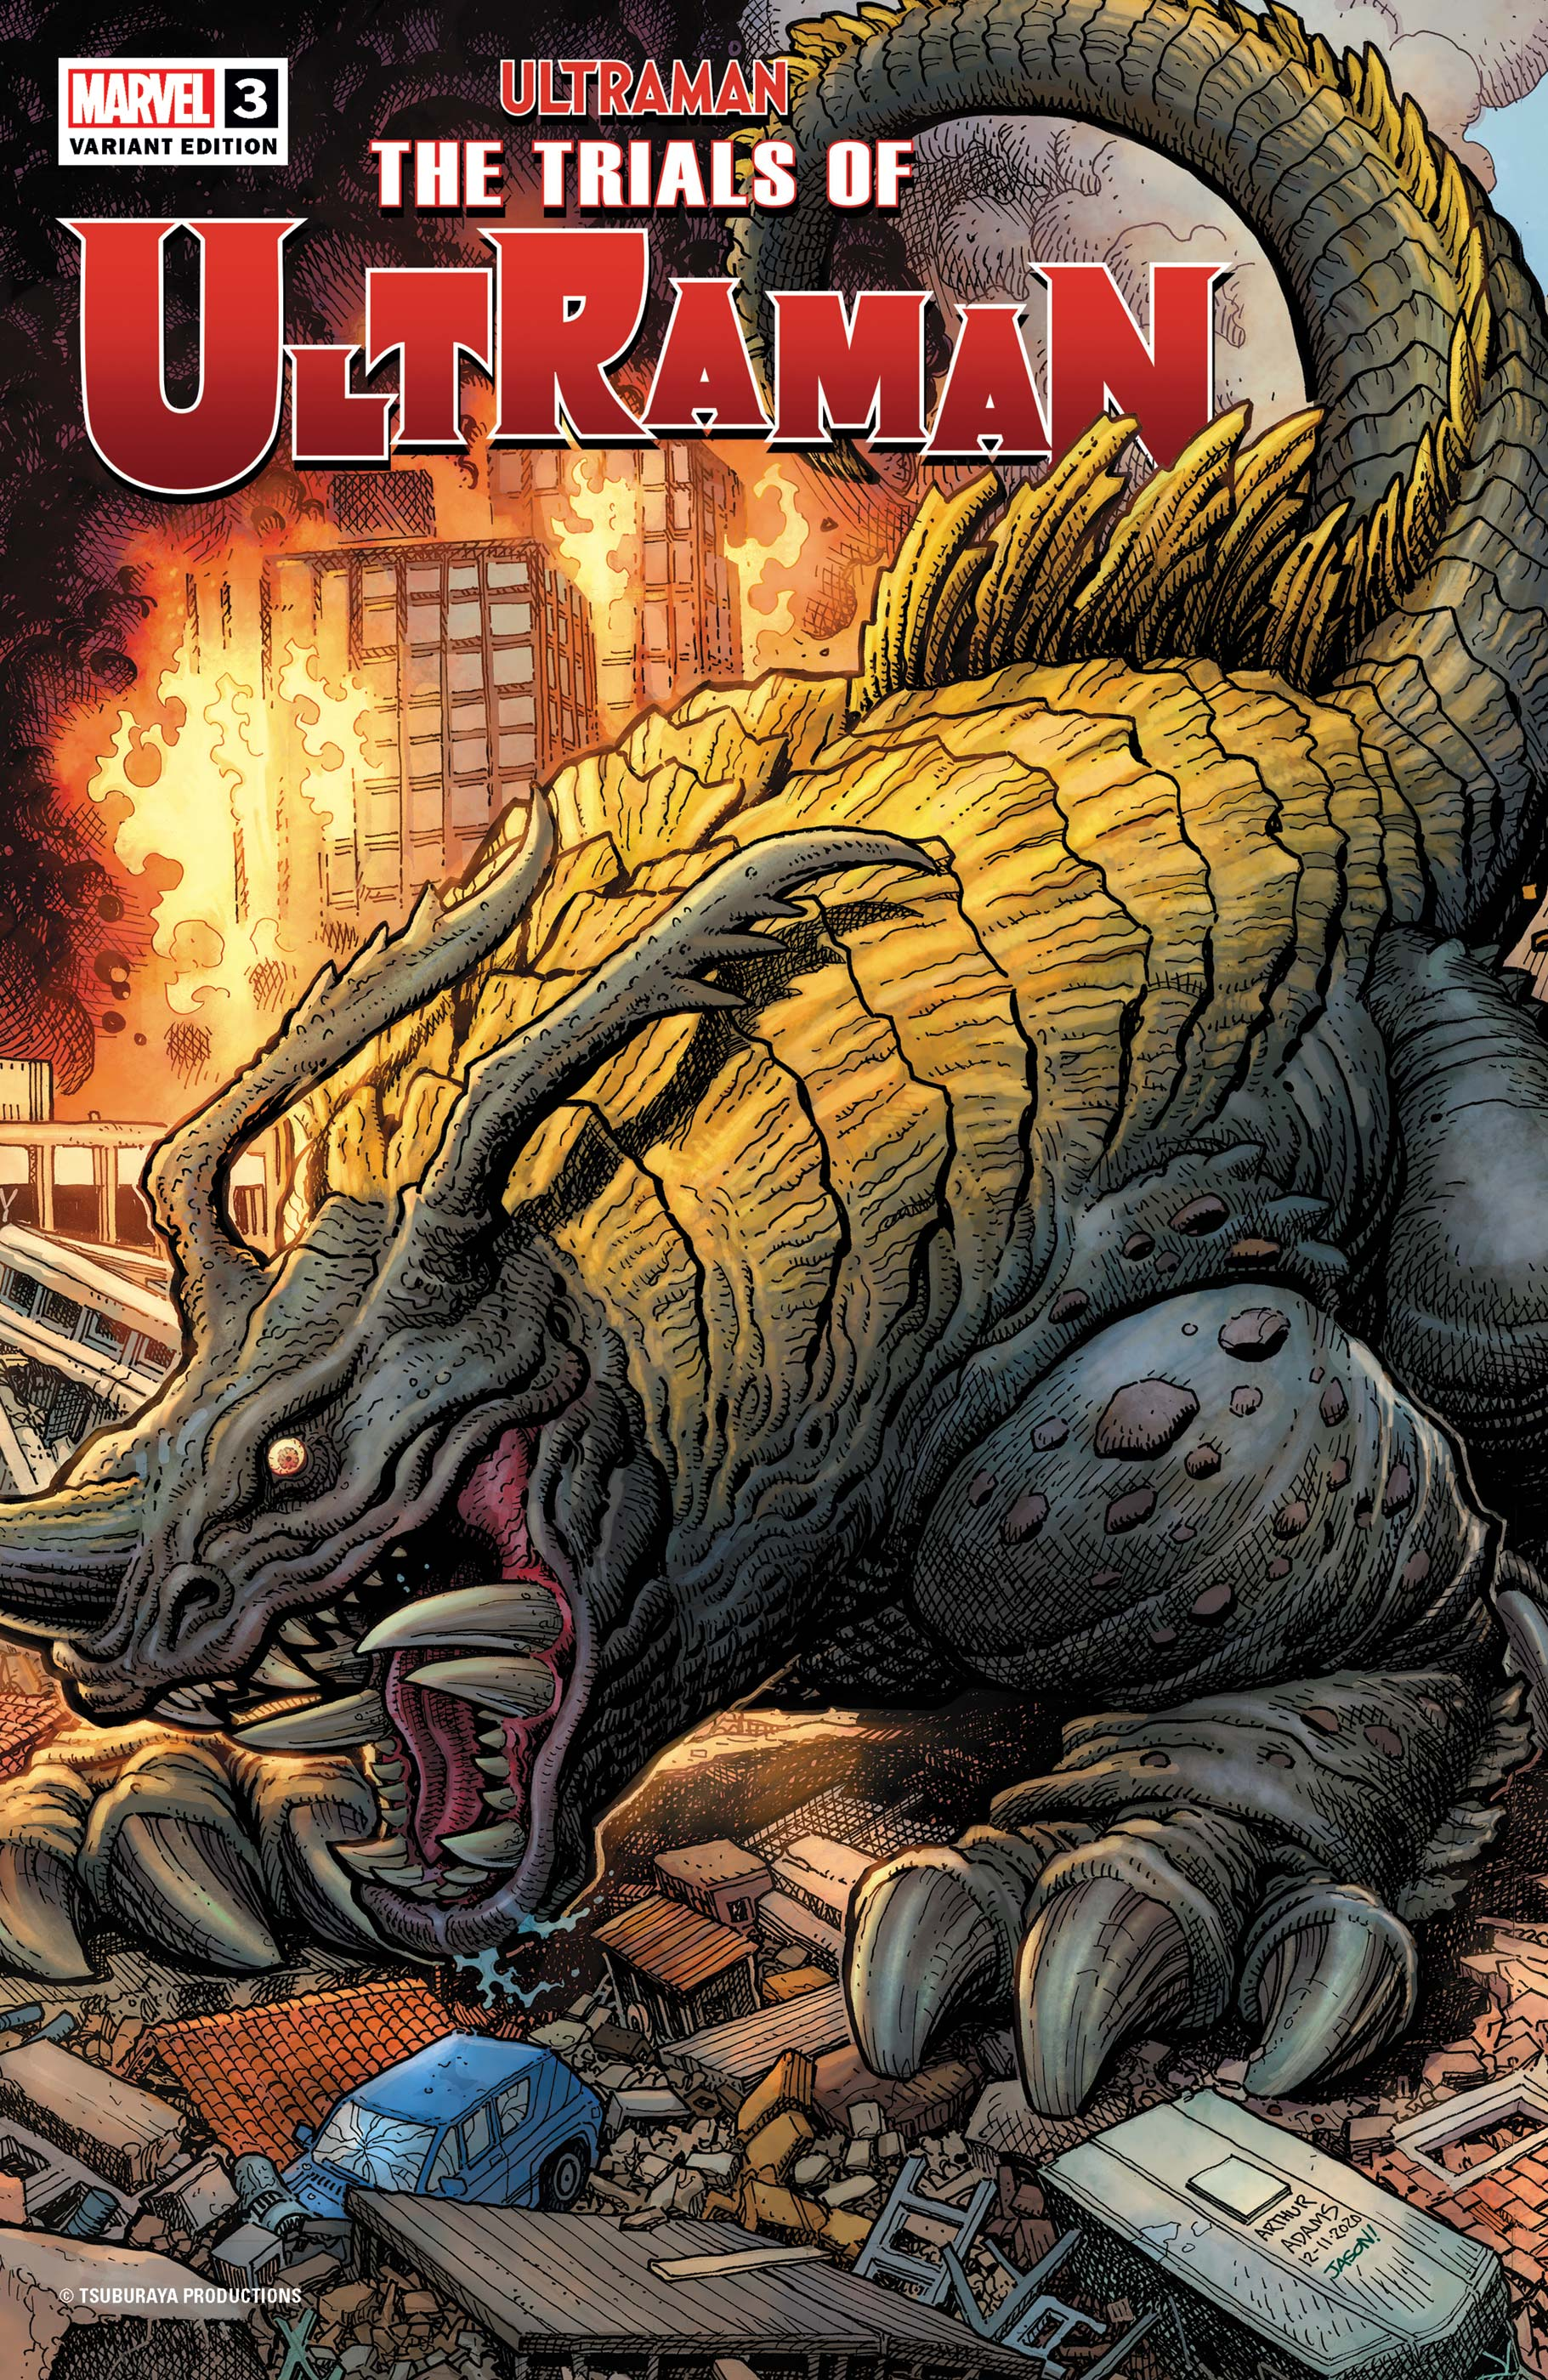 The Trials of Ultraman (2021) #3 (Variant)